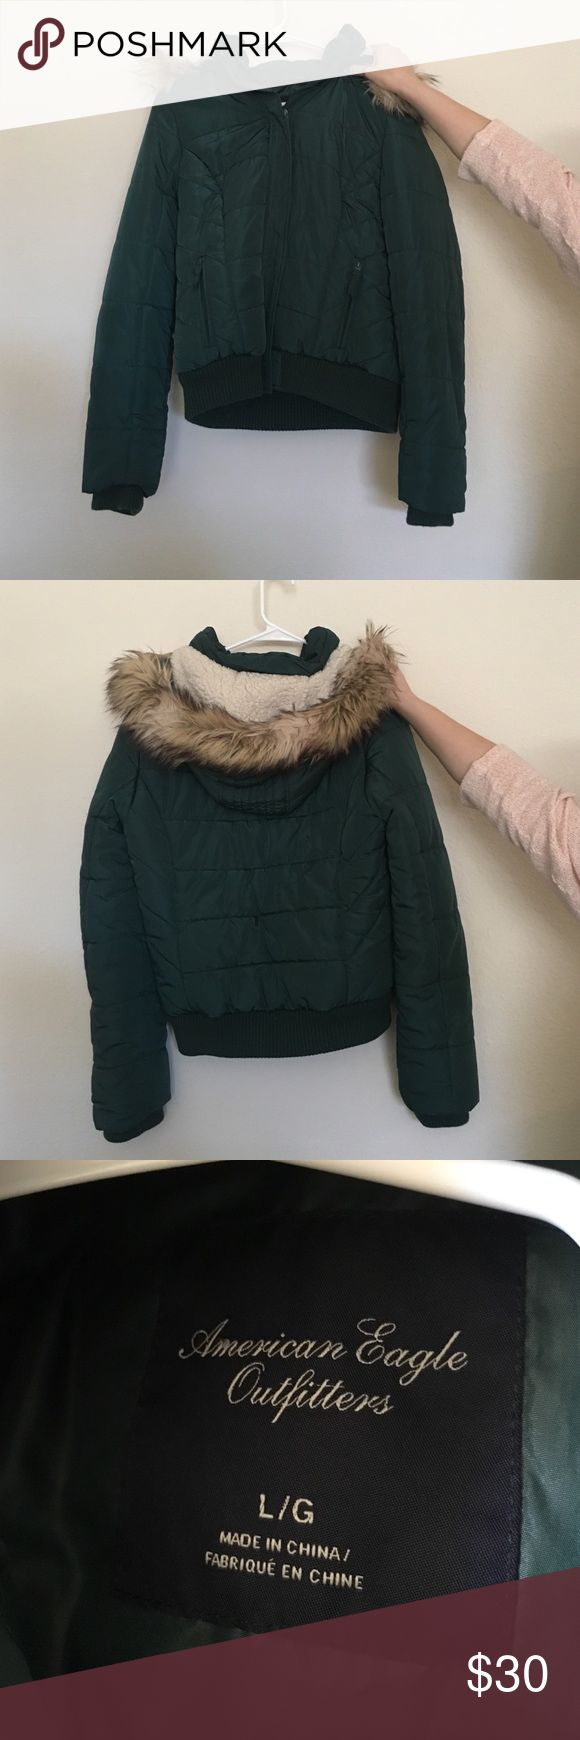 American Eagle jacket Great condition! American Eagle Outfitters Jackets & Coats Puffers